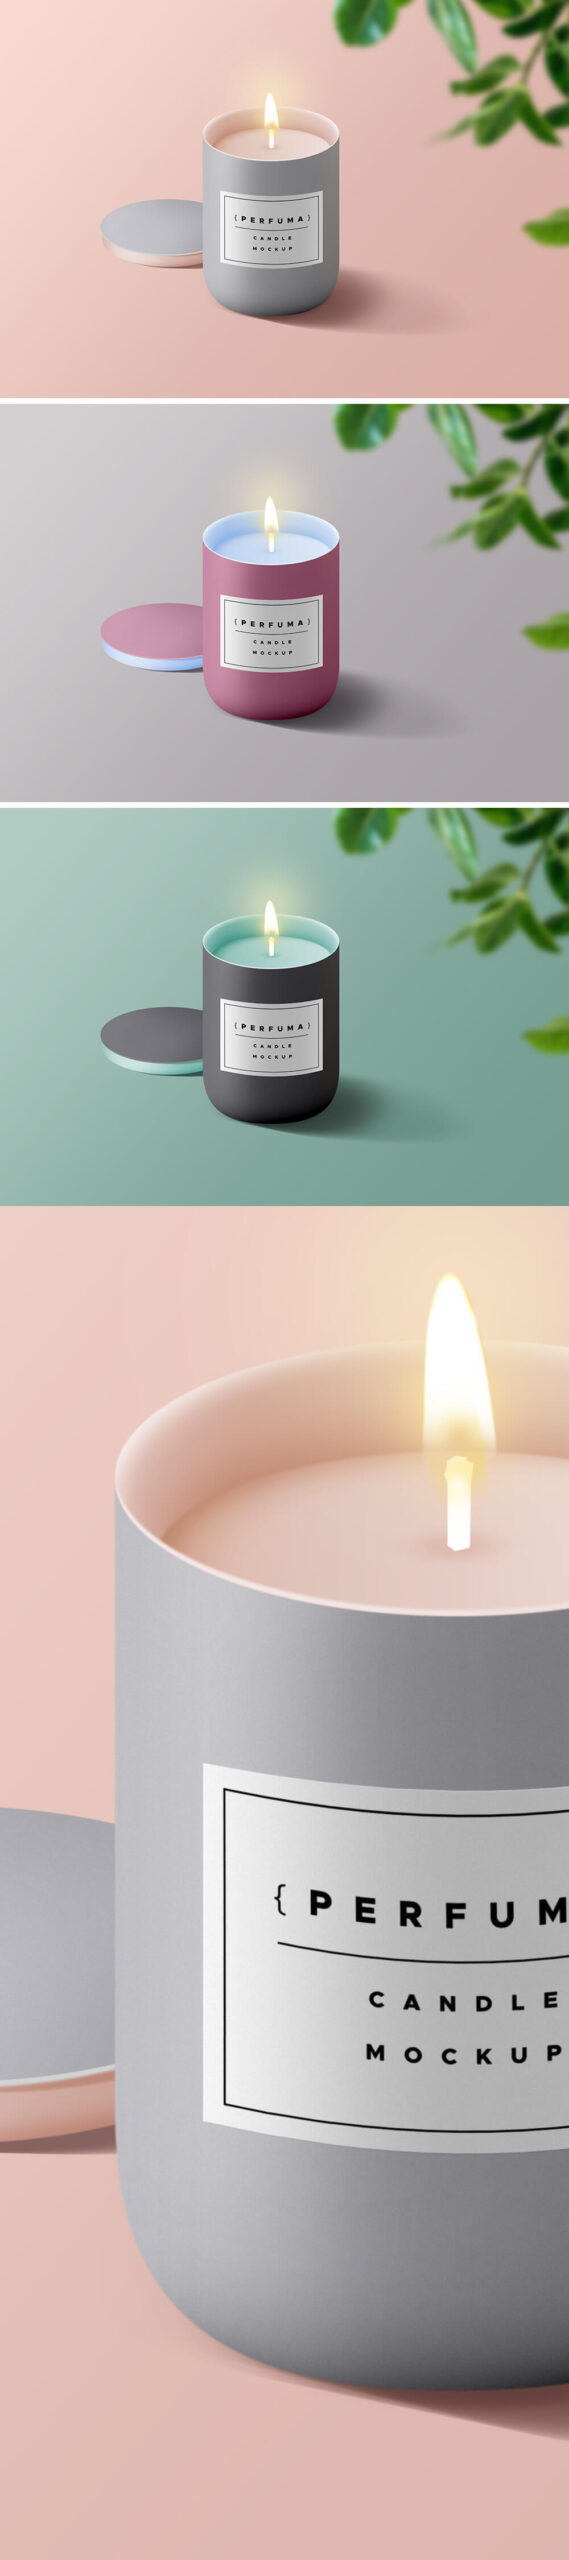 Free Incredible Candle Mockup PSD Template